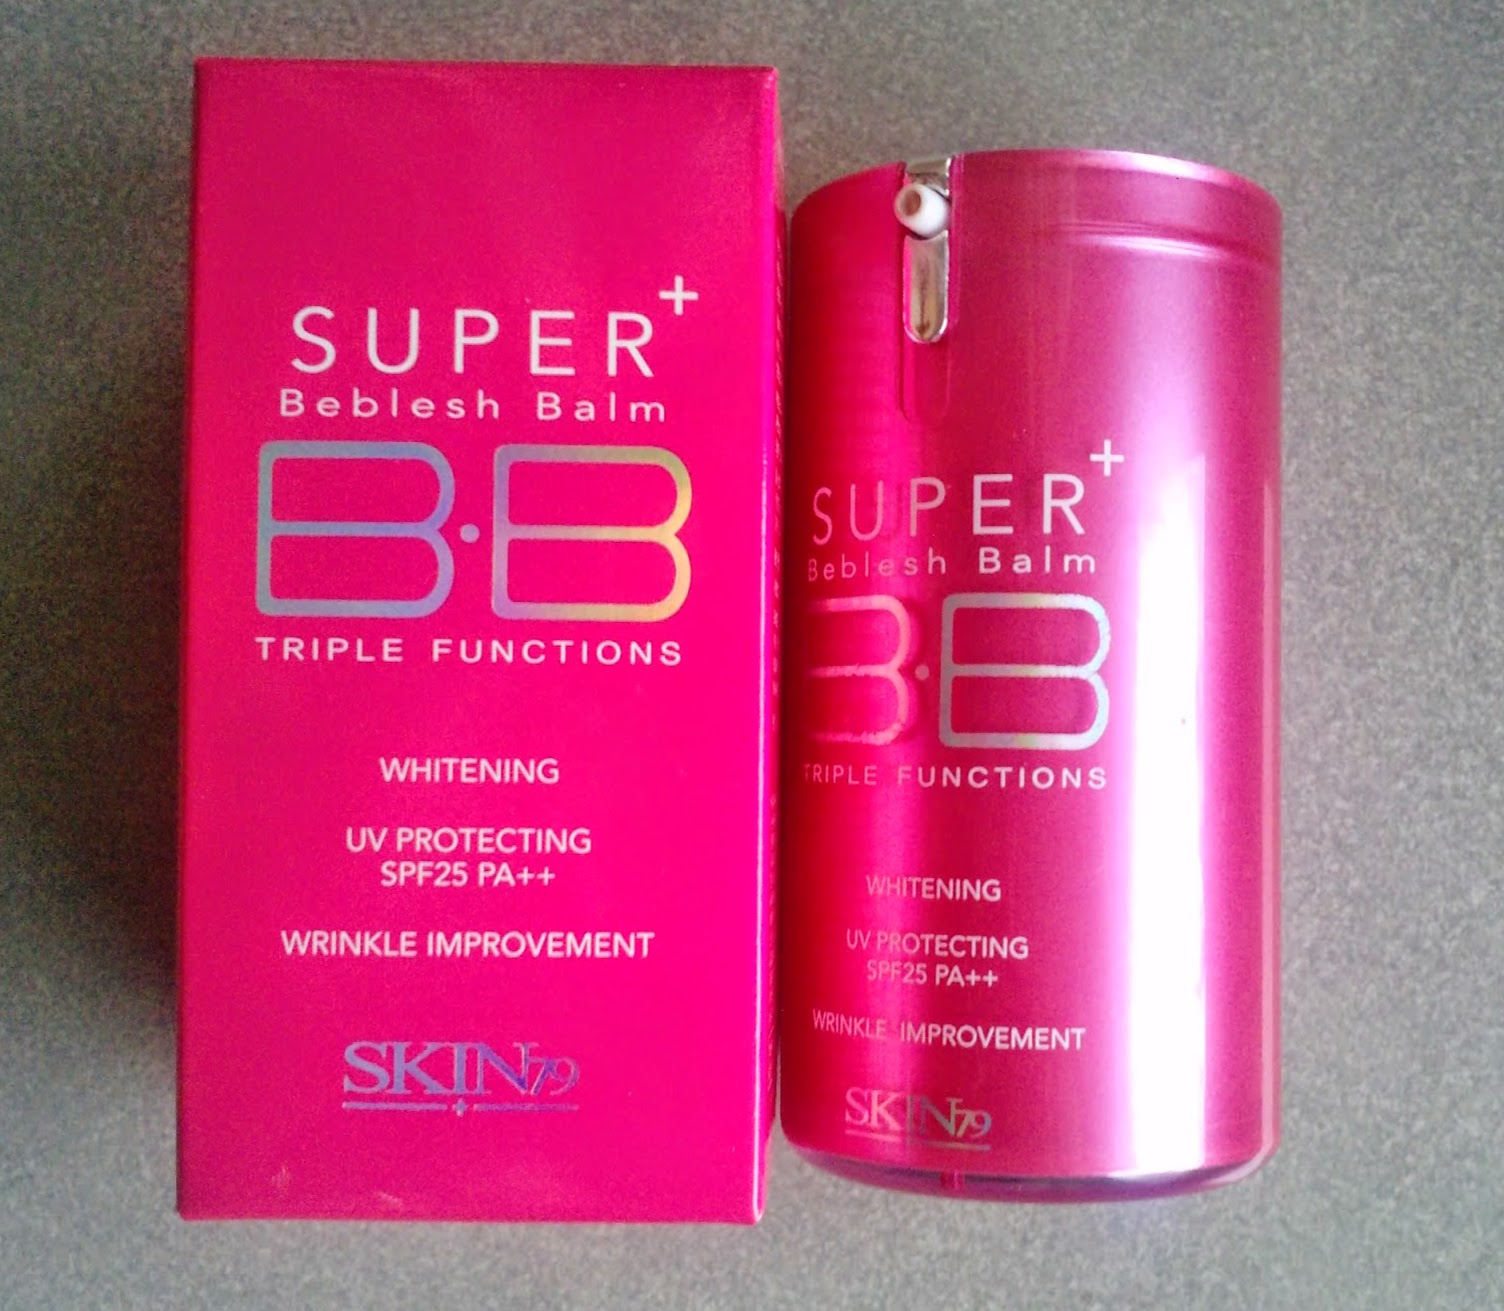 Skin79 Super+ Triple Function Hot Pink, SPF25